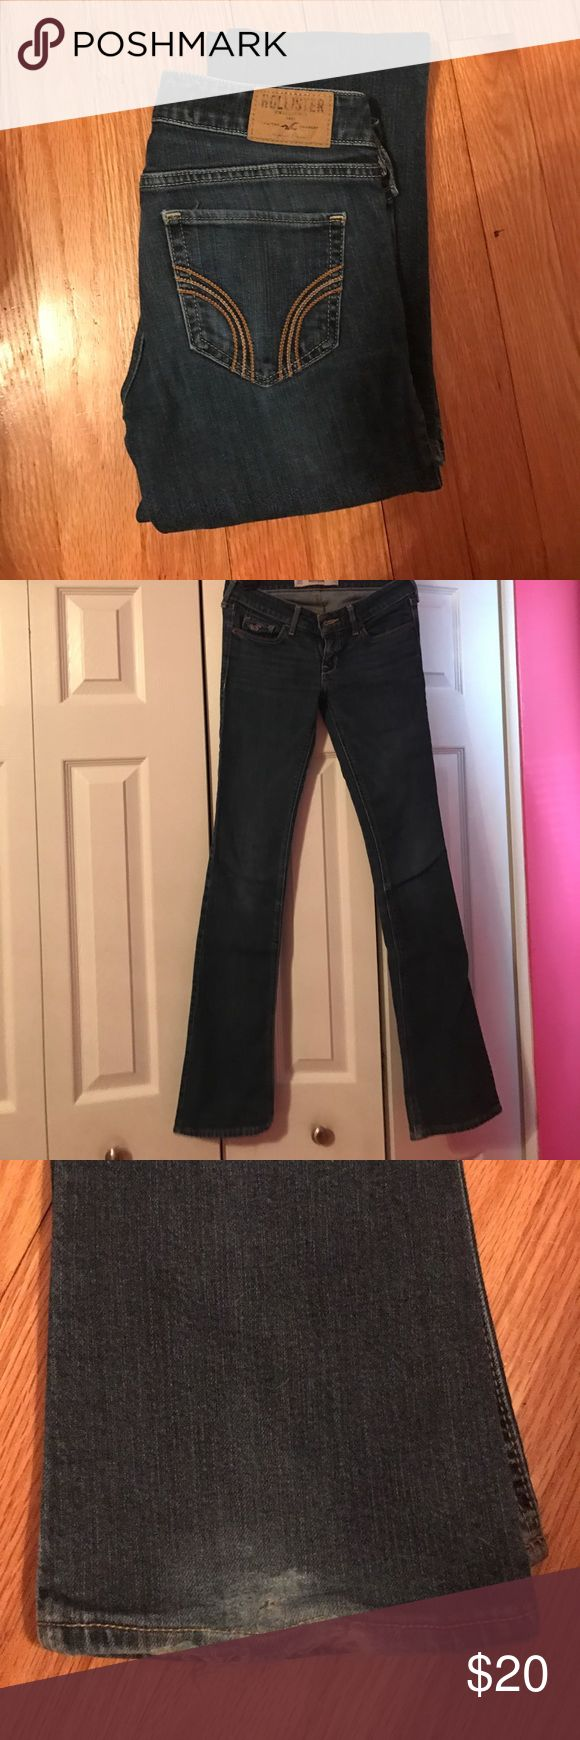 Hollister Boot Cut Jeans Hollister boot cut jeans! Slight tearing on the ends from stepping on them while wearing them, otherwise in great condition! 00R Hollister Jeans Boot Cut